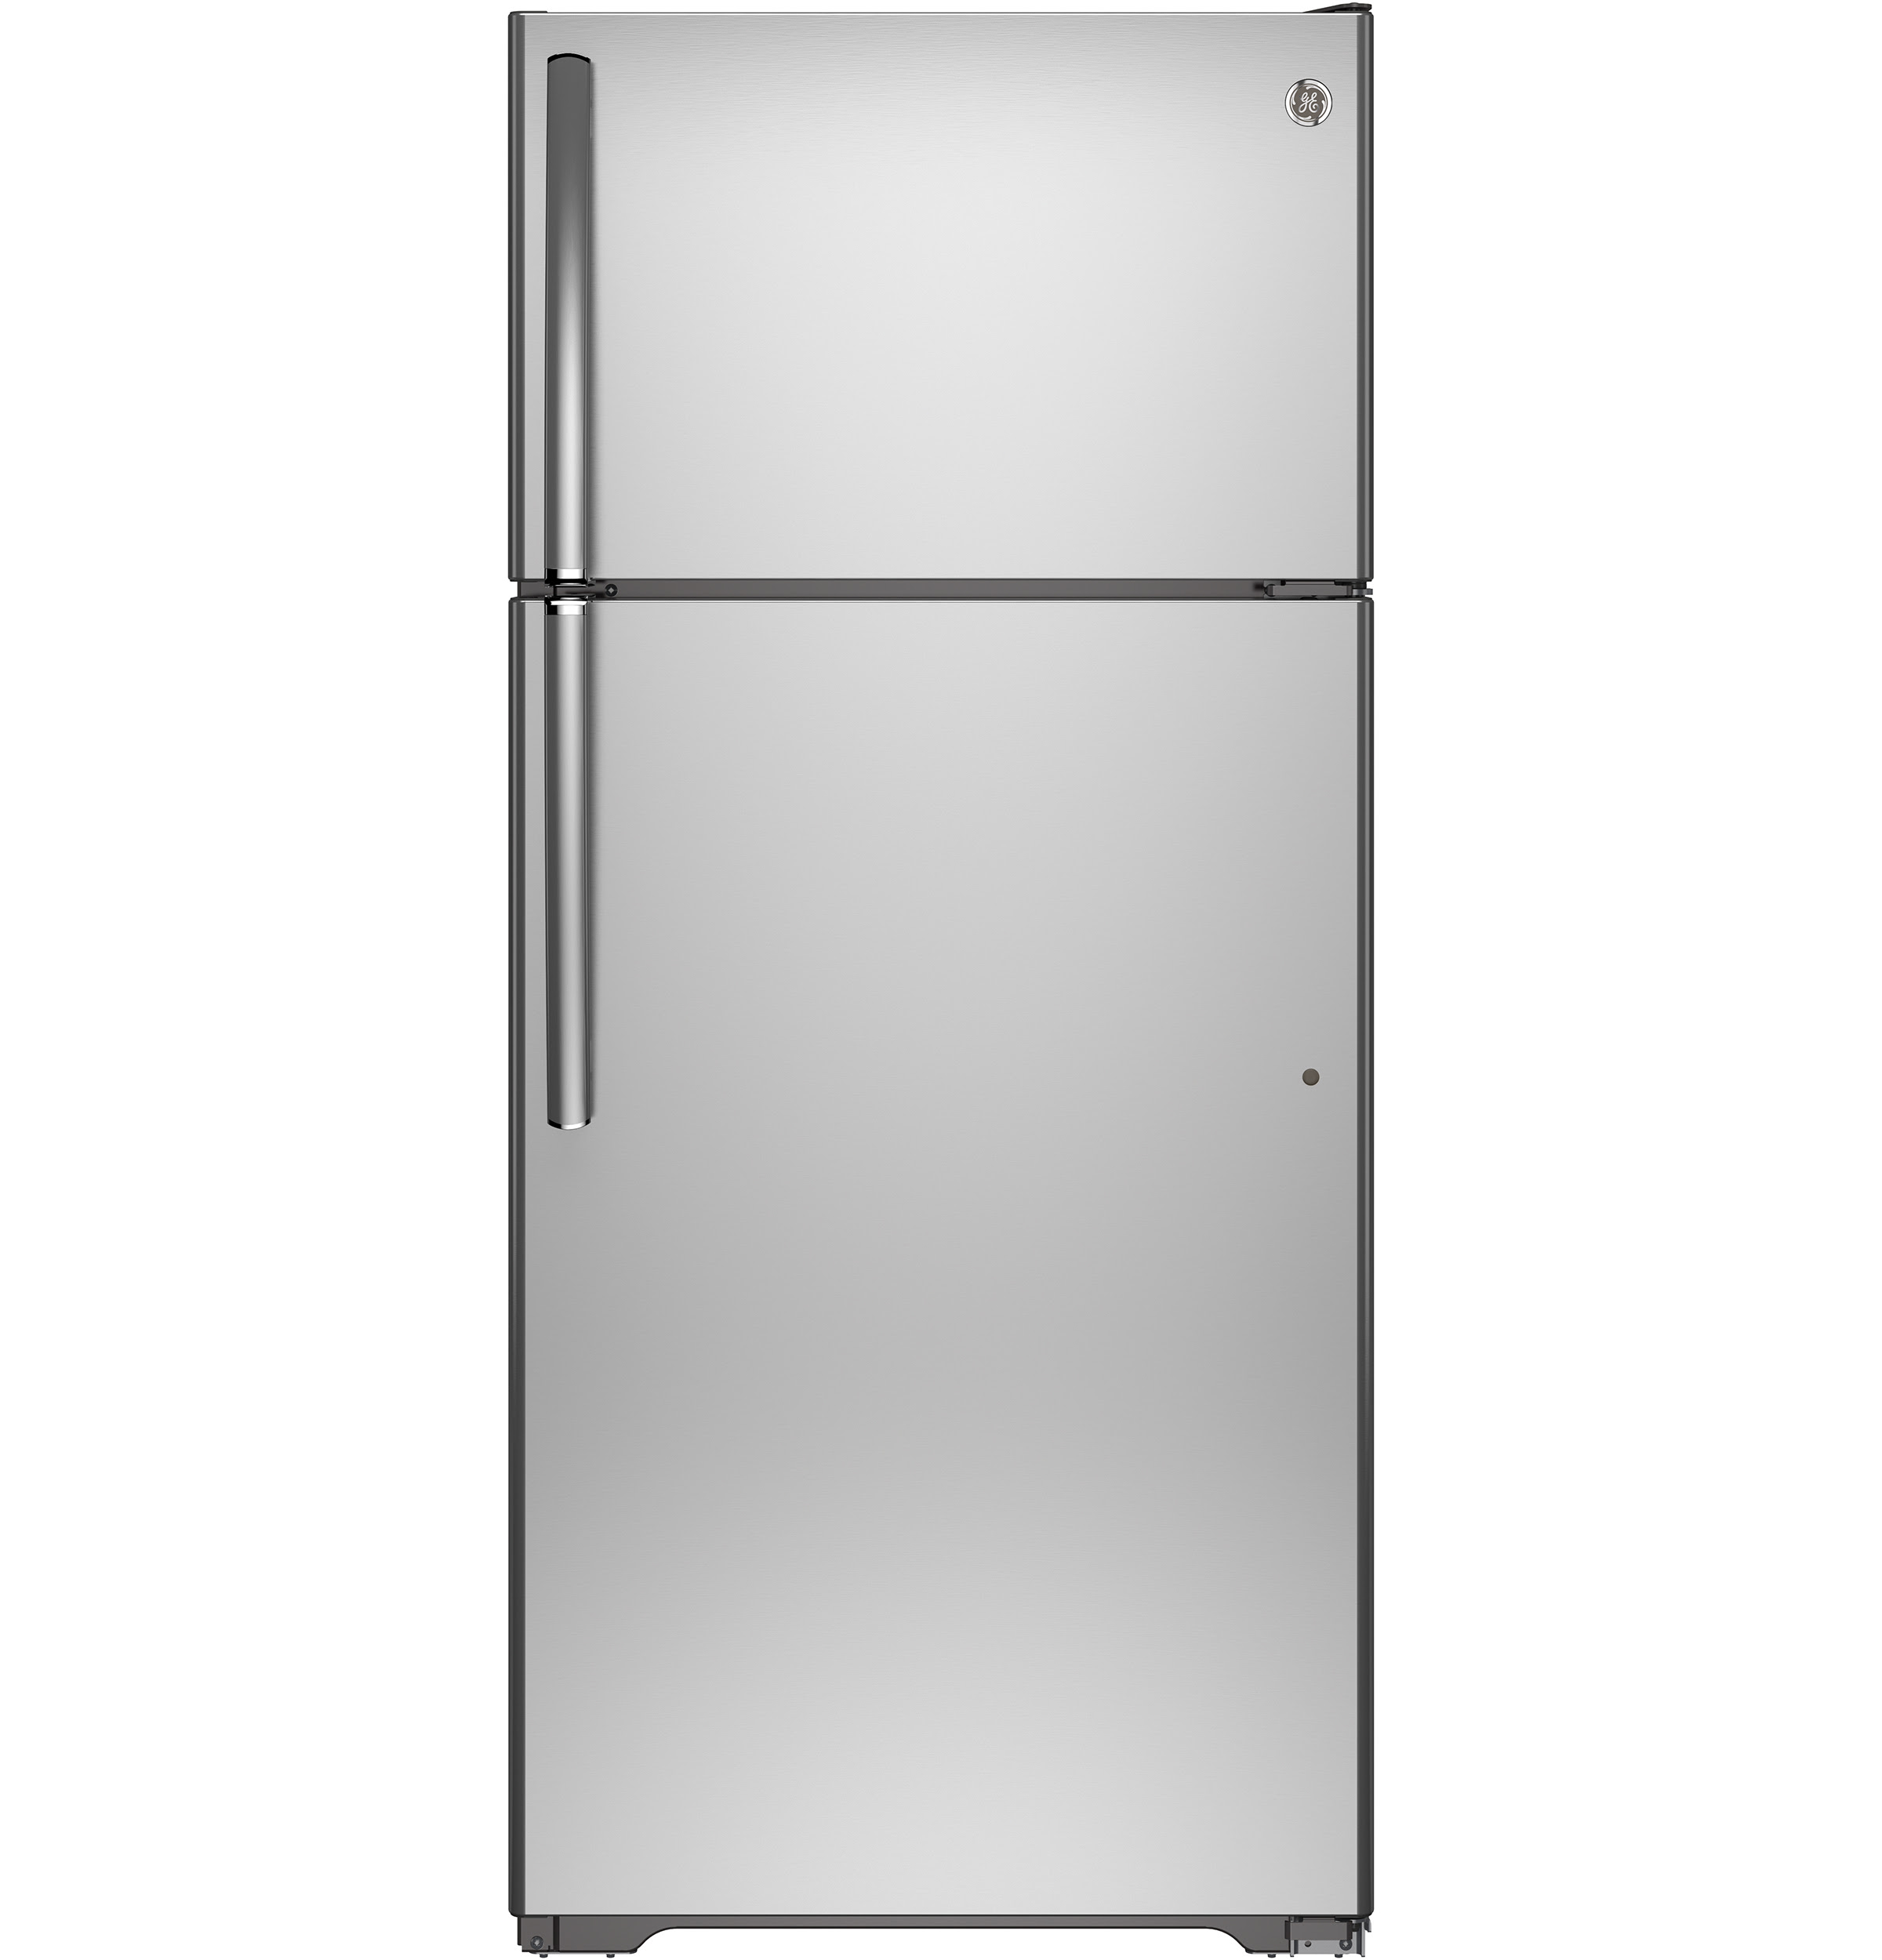 GE ENERGY STAR 15 5 Cu Ft Top Freezer Refrigerator